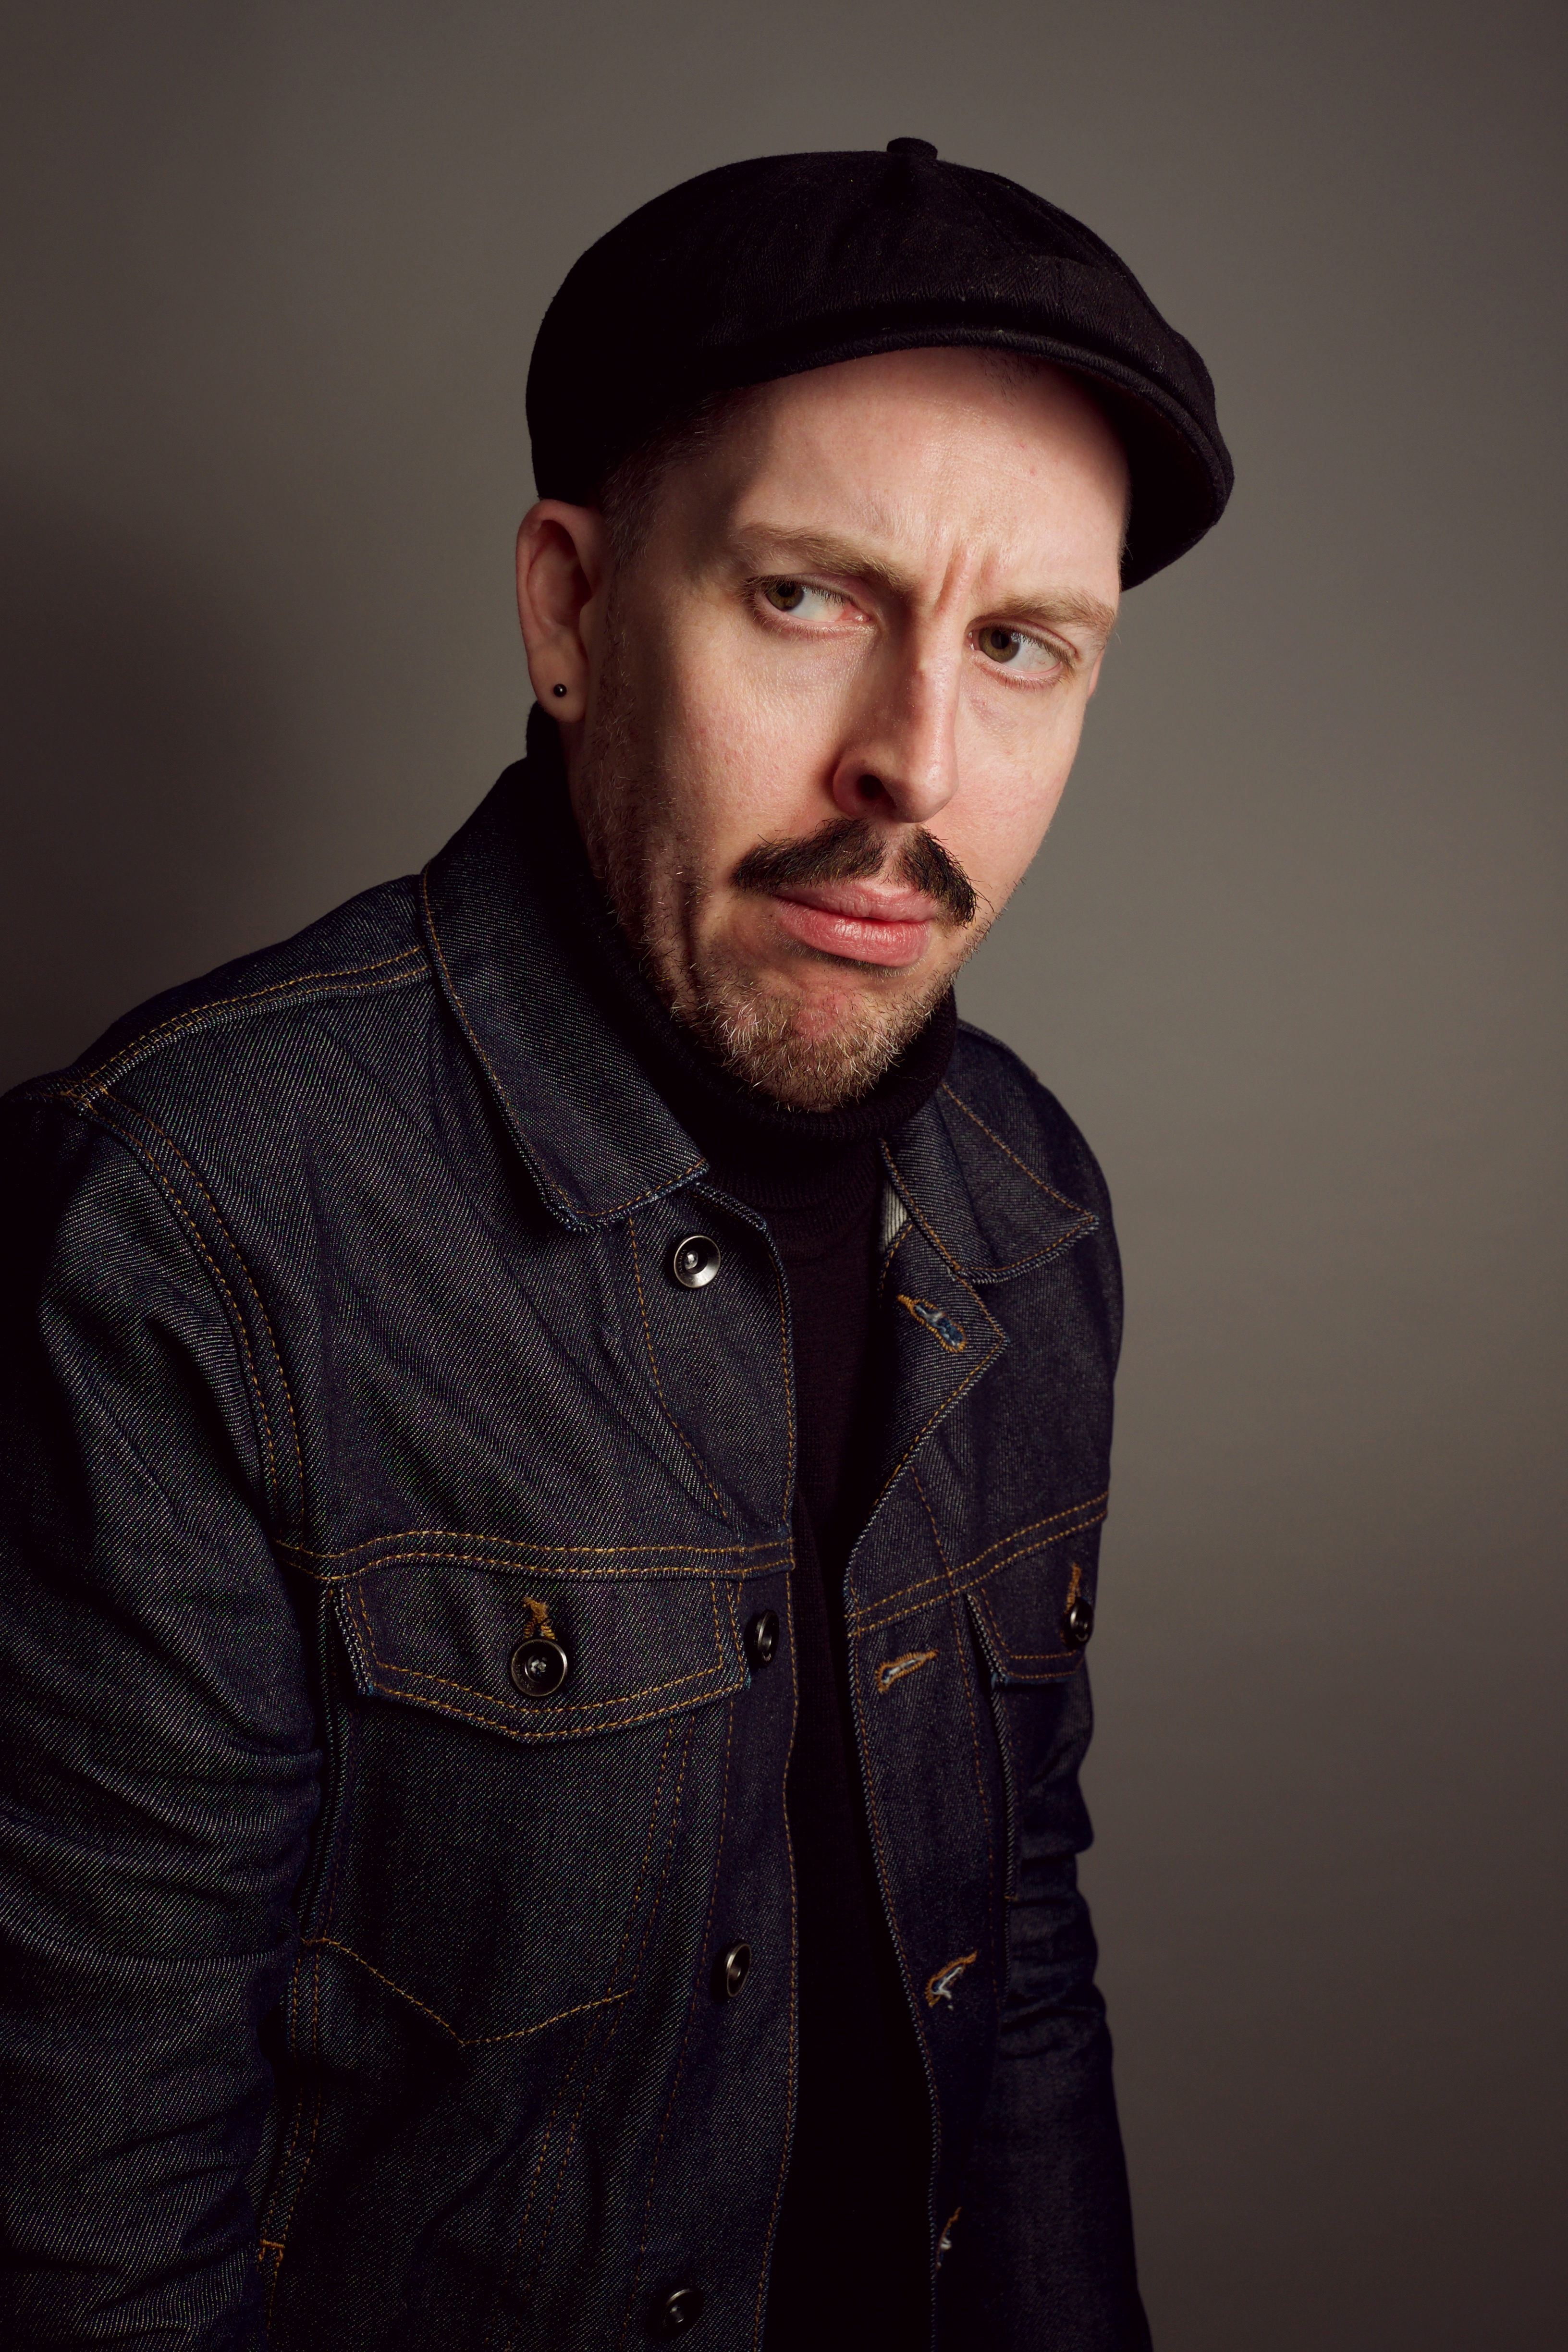 carl donnelly vegan comedian